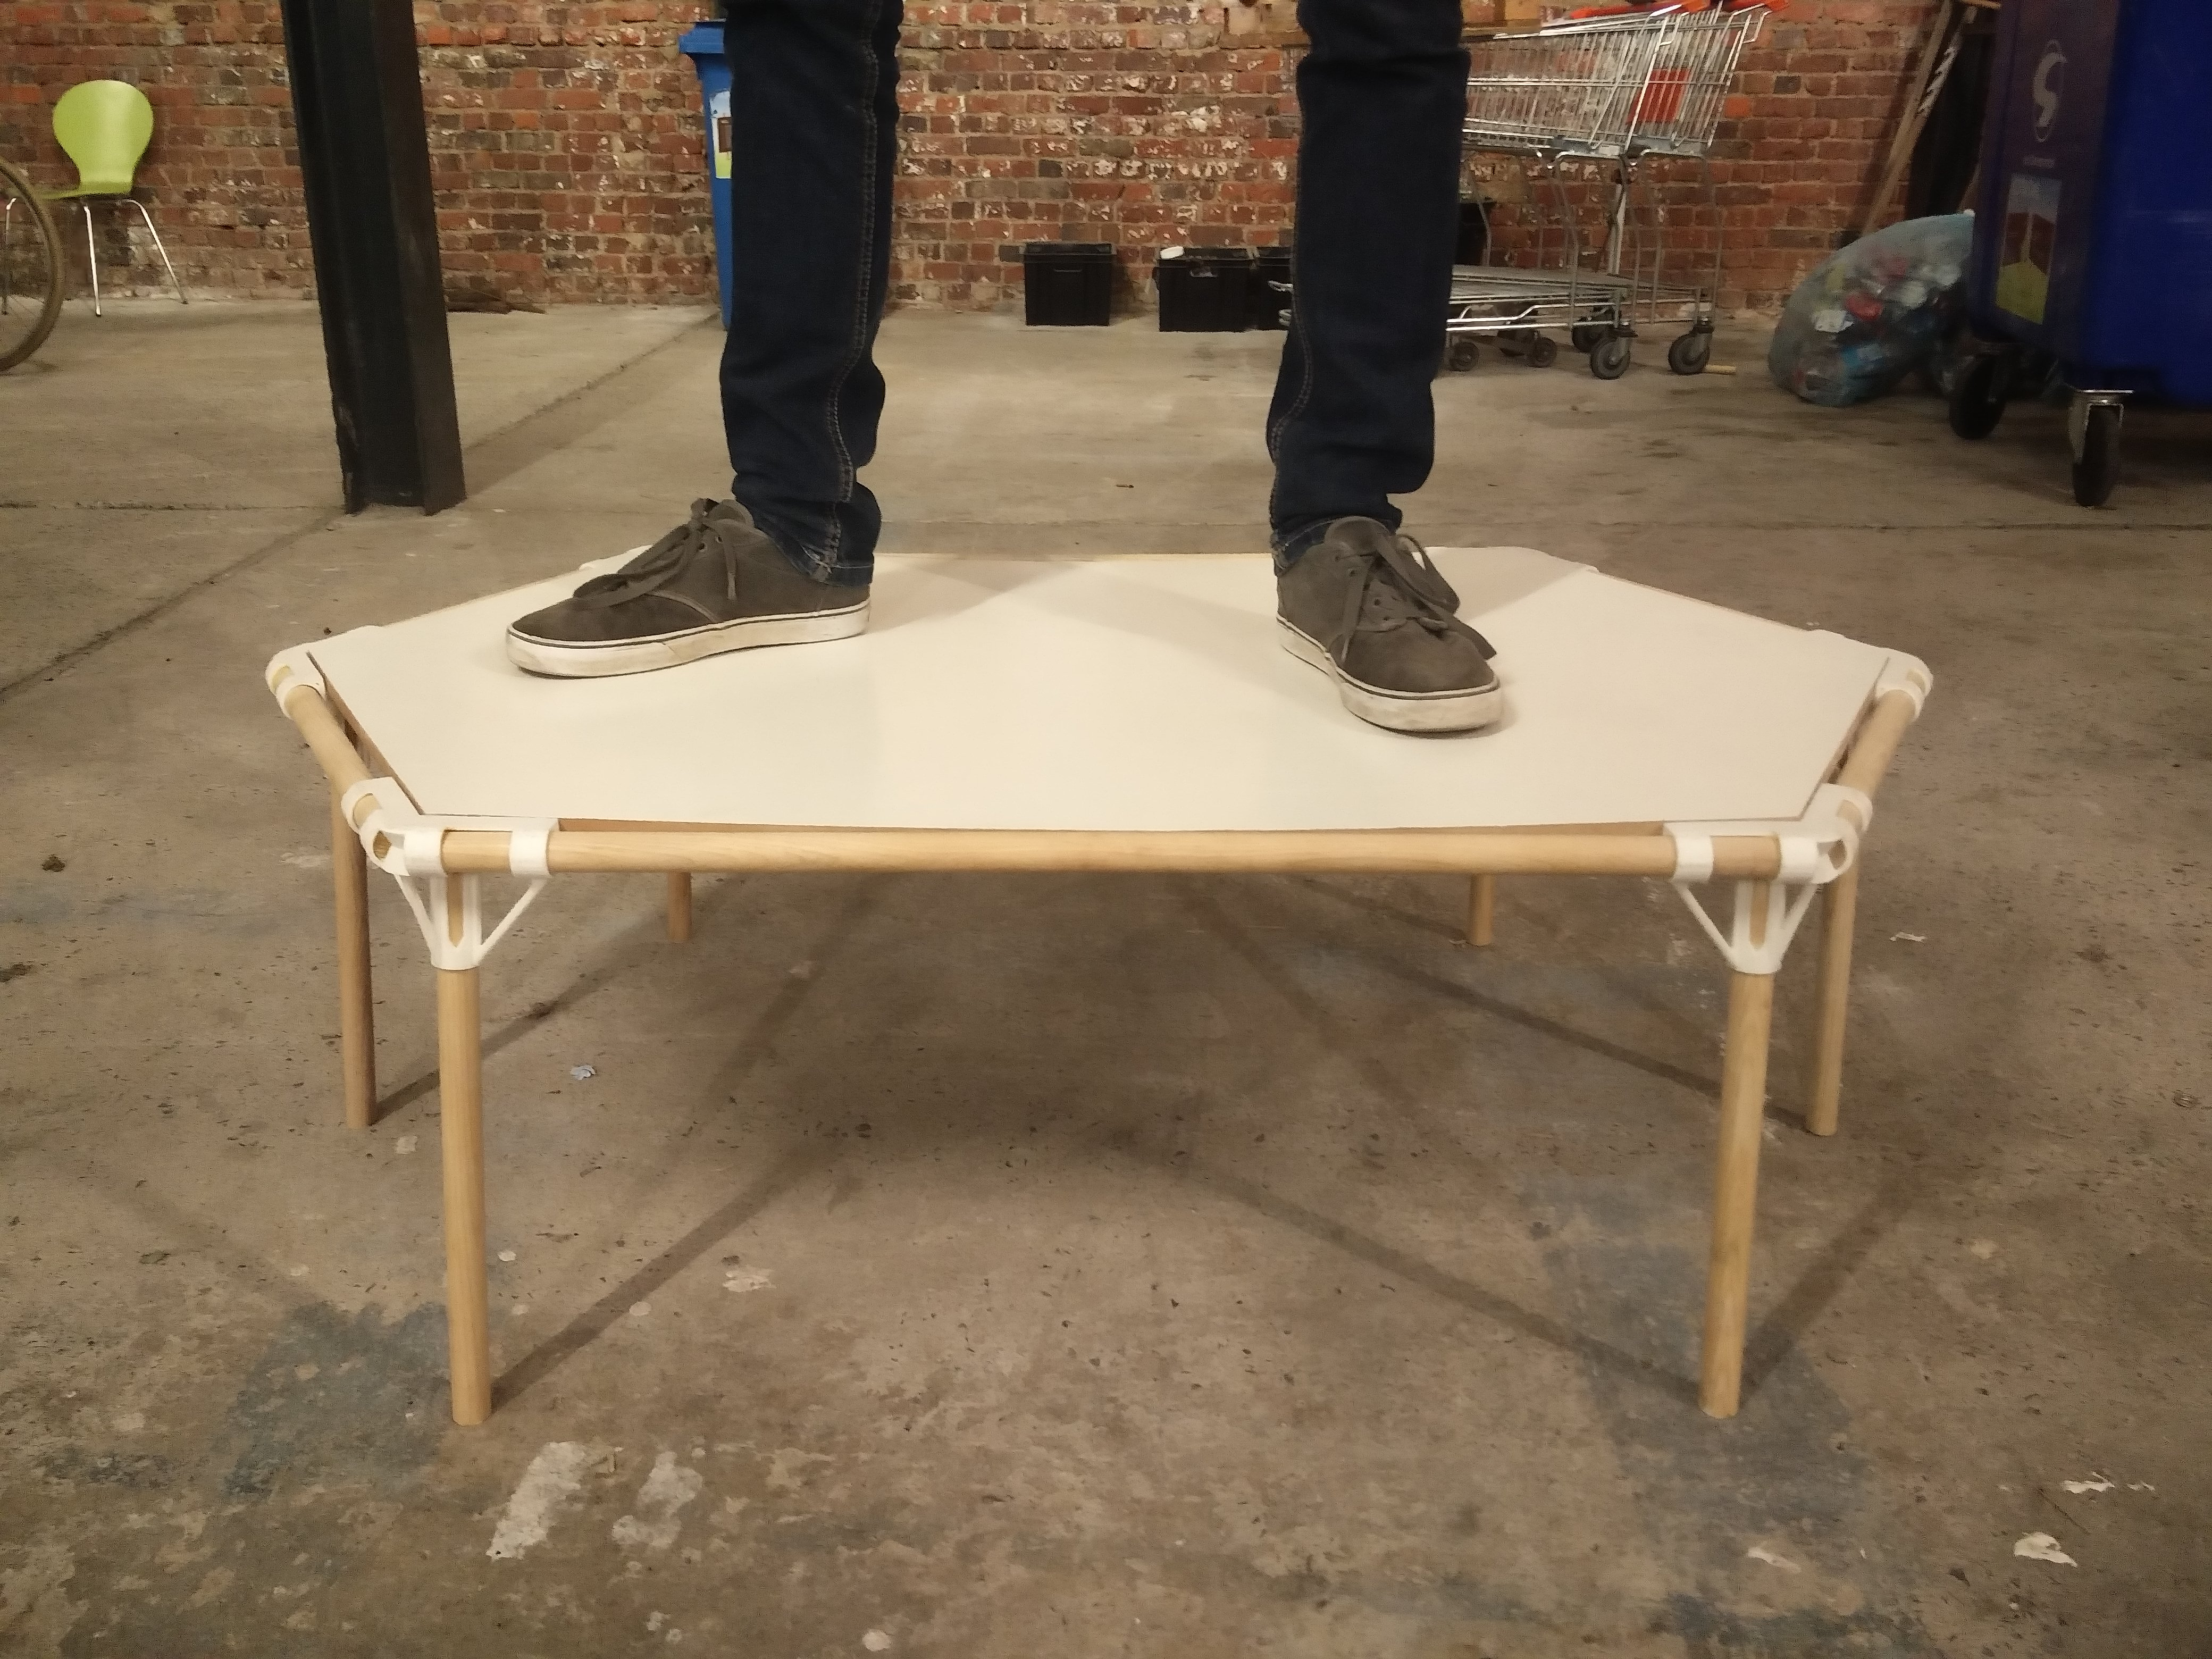 Picture of Screwless Hexagon Table Using 3D Printing